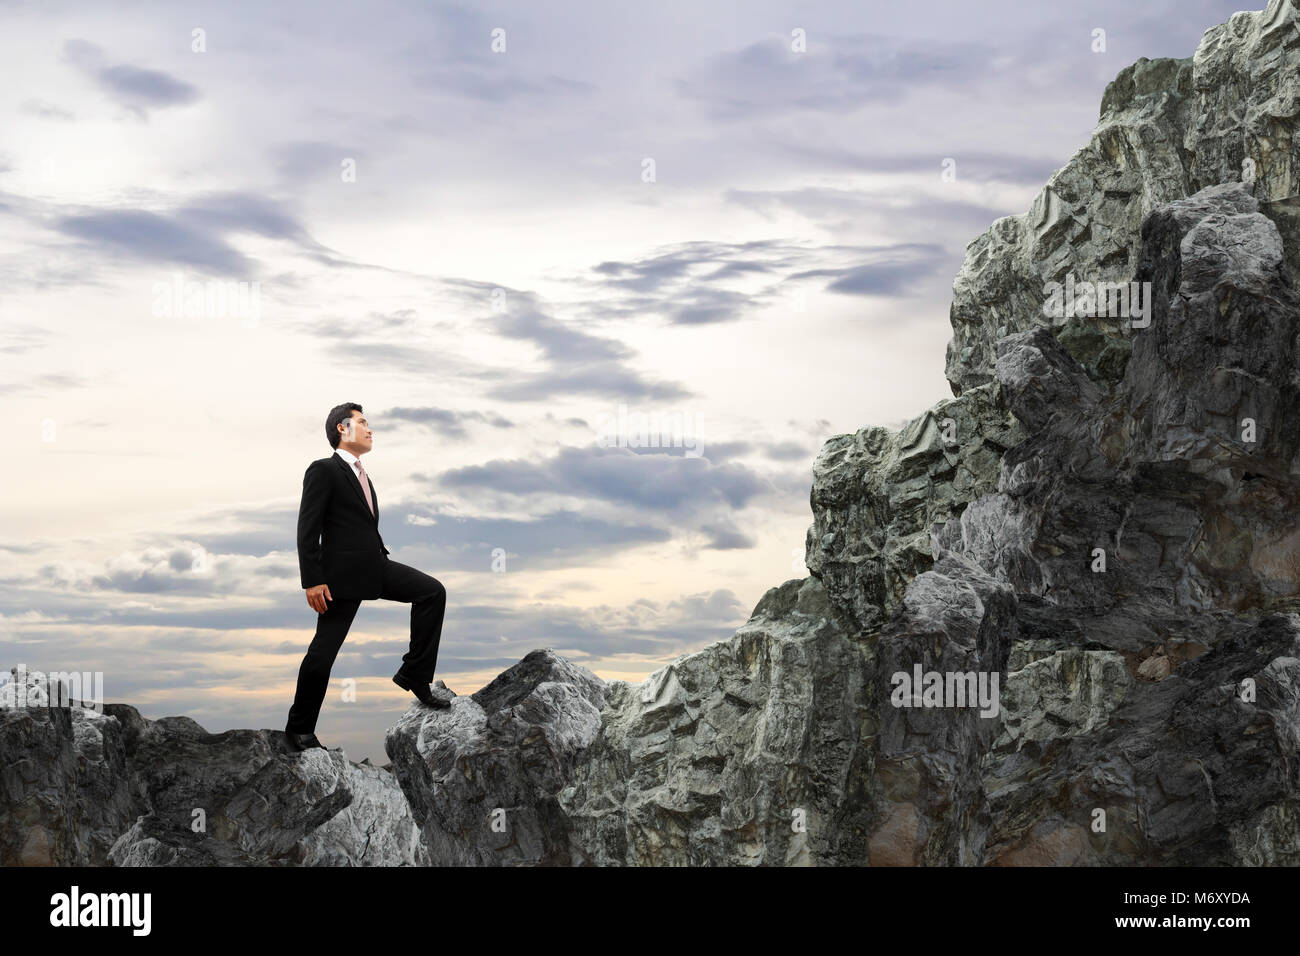 Concept business. Courage of businessman. - Stock Image